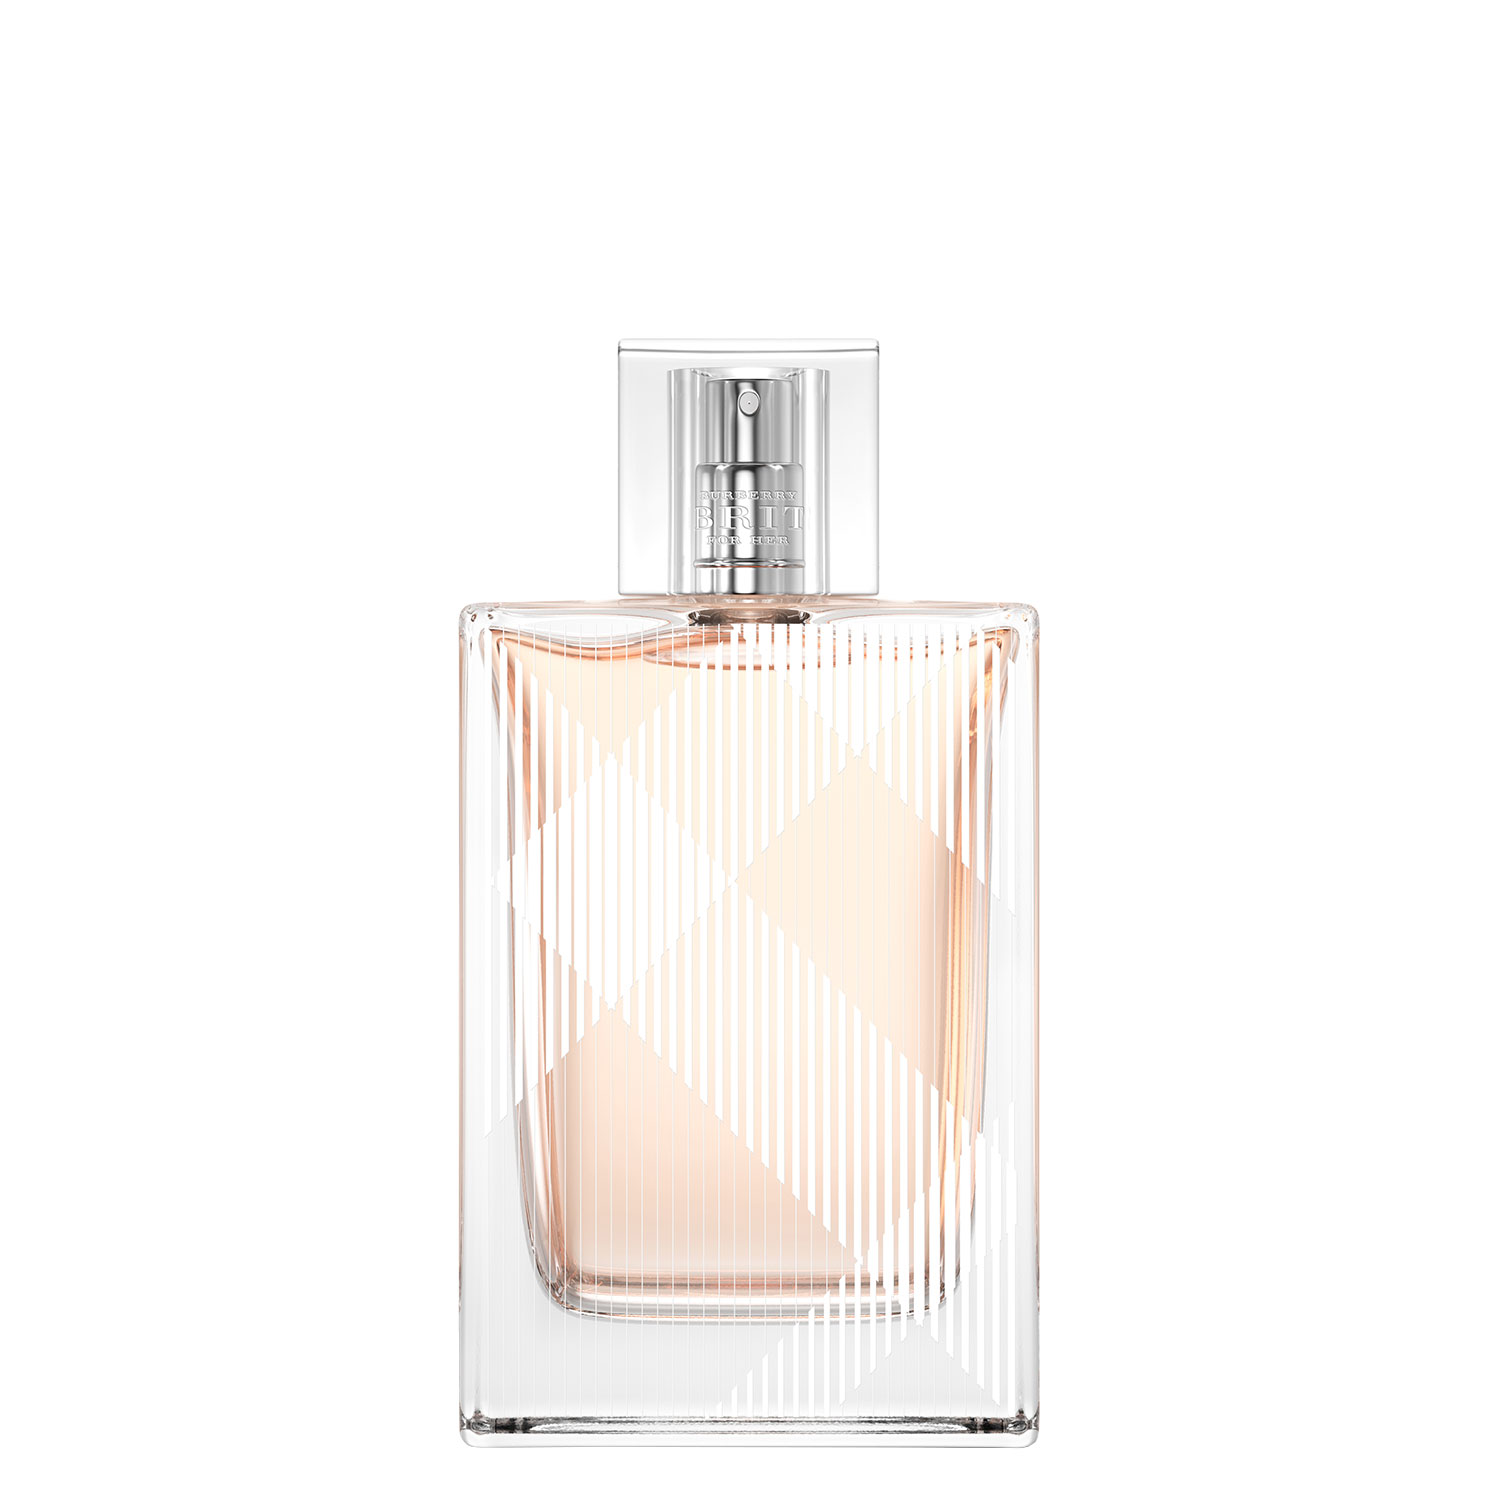 Burberry Brit - Eau de Toilette for Her